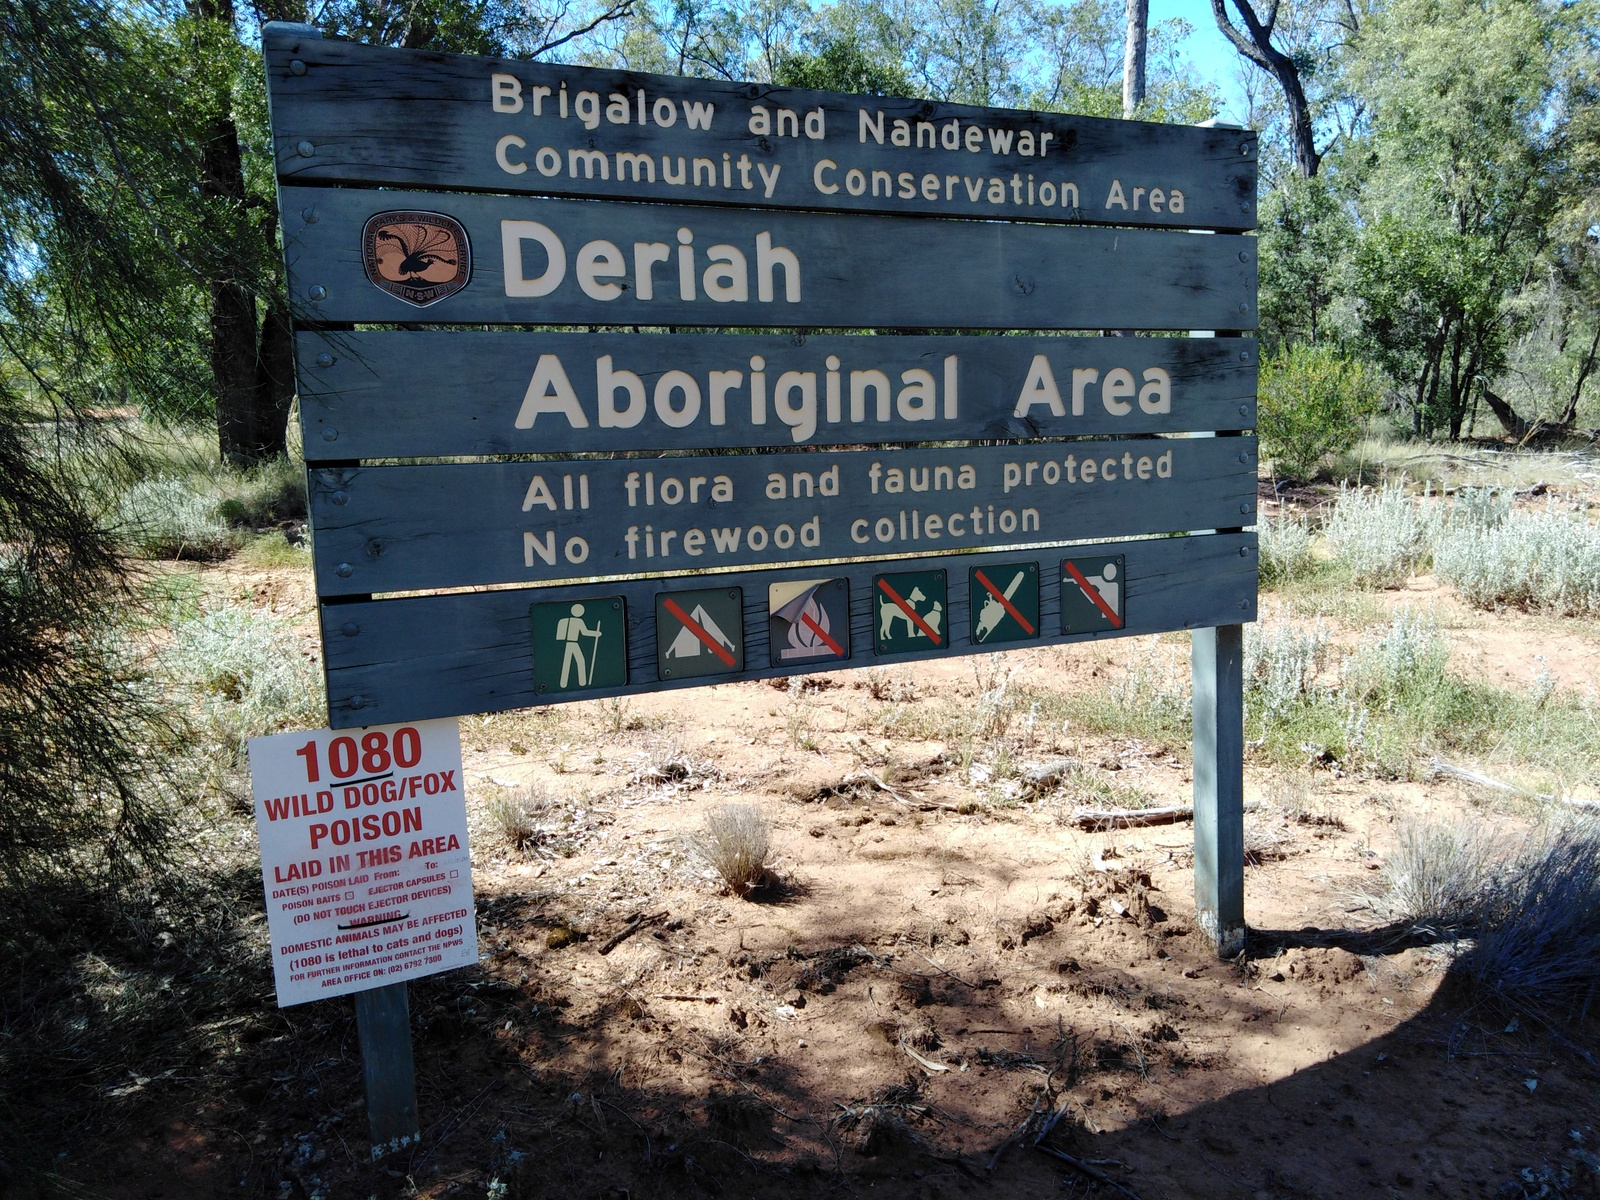 Deriah Aboriginal Area